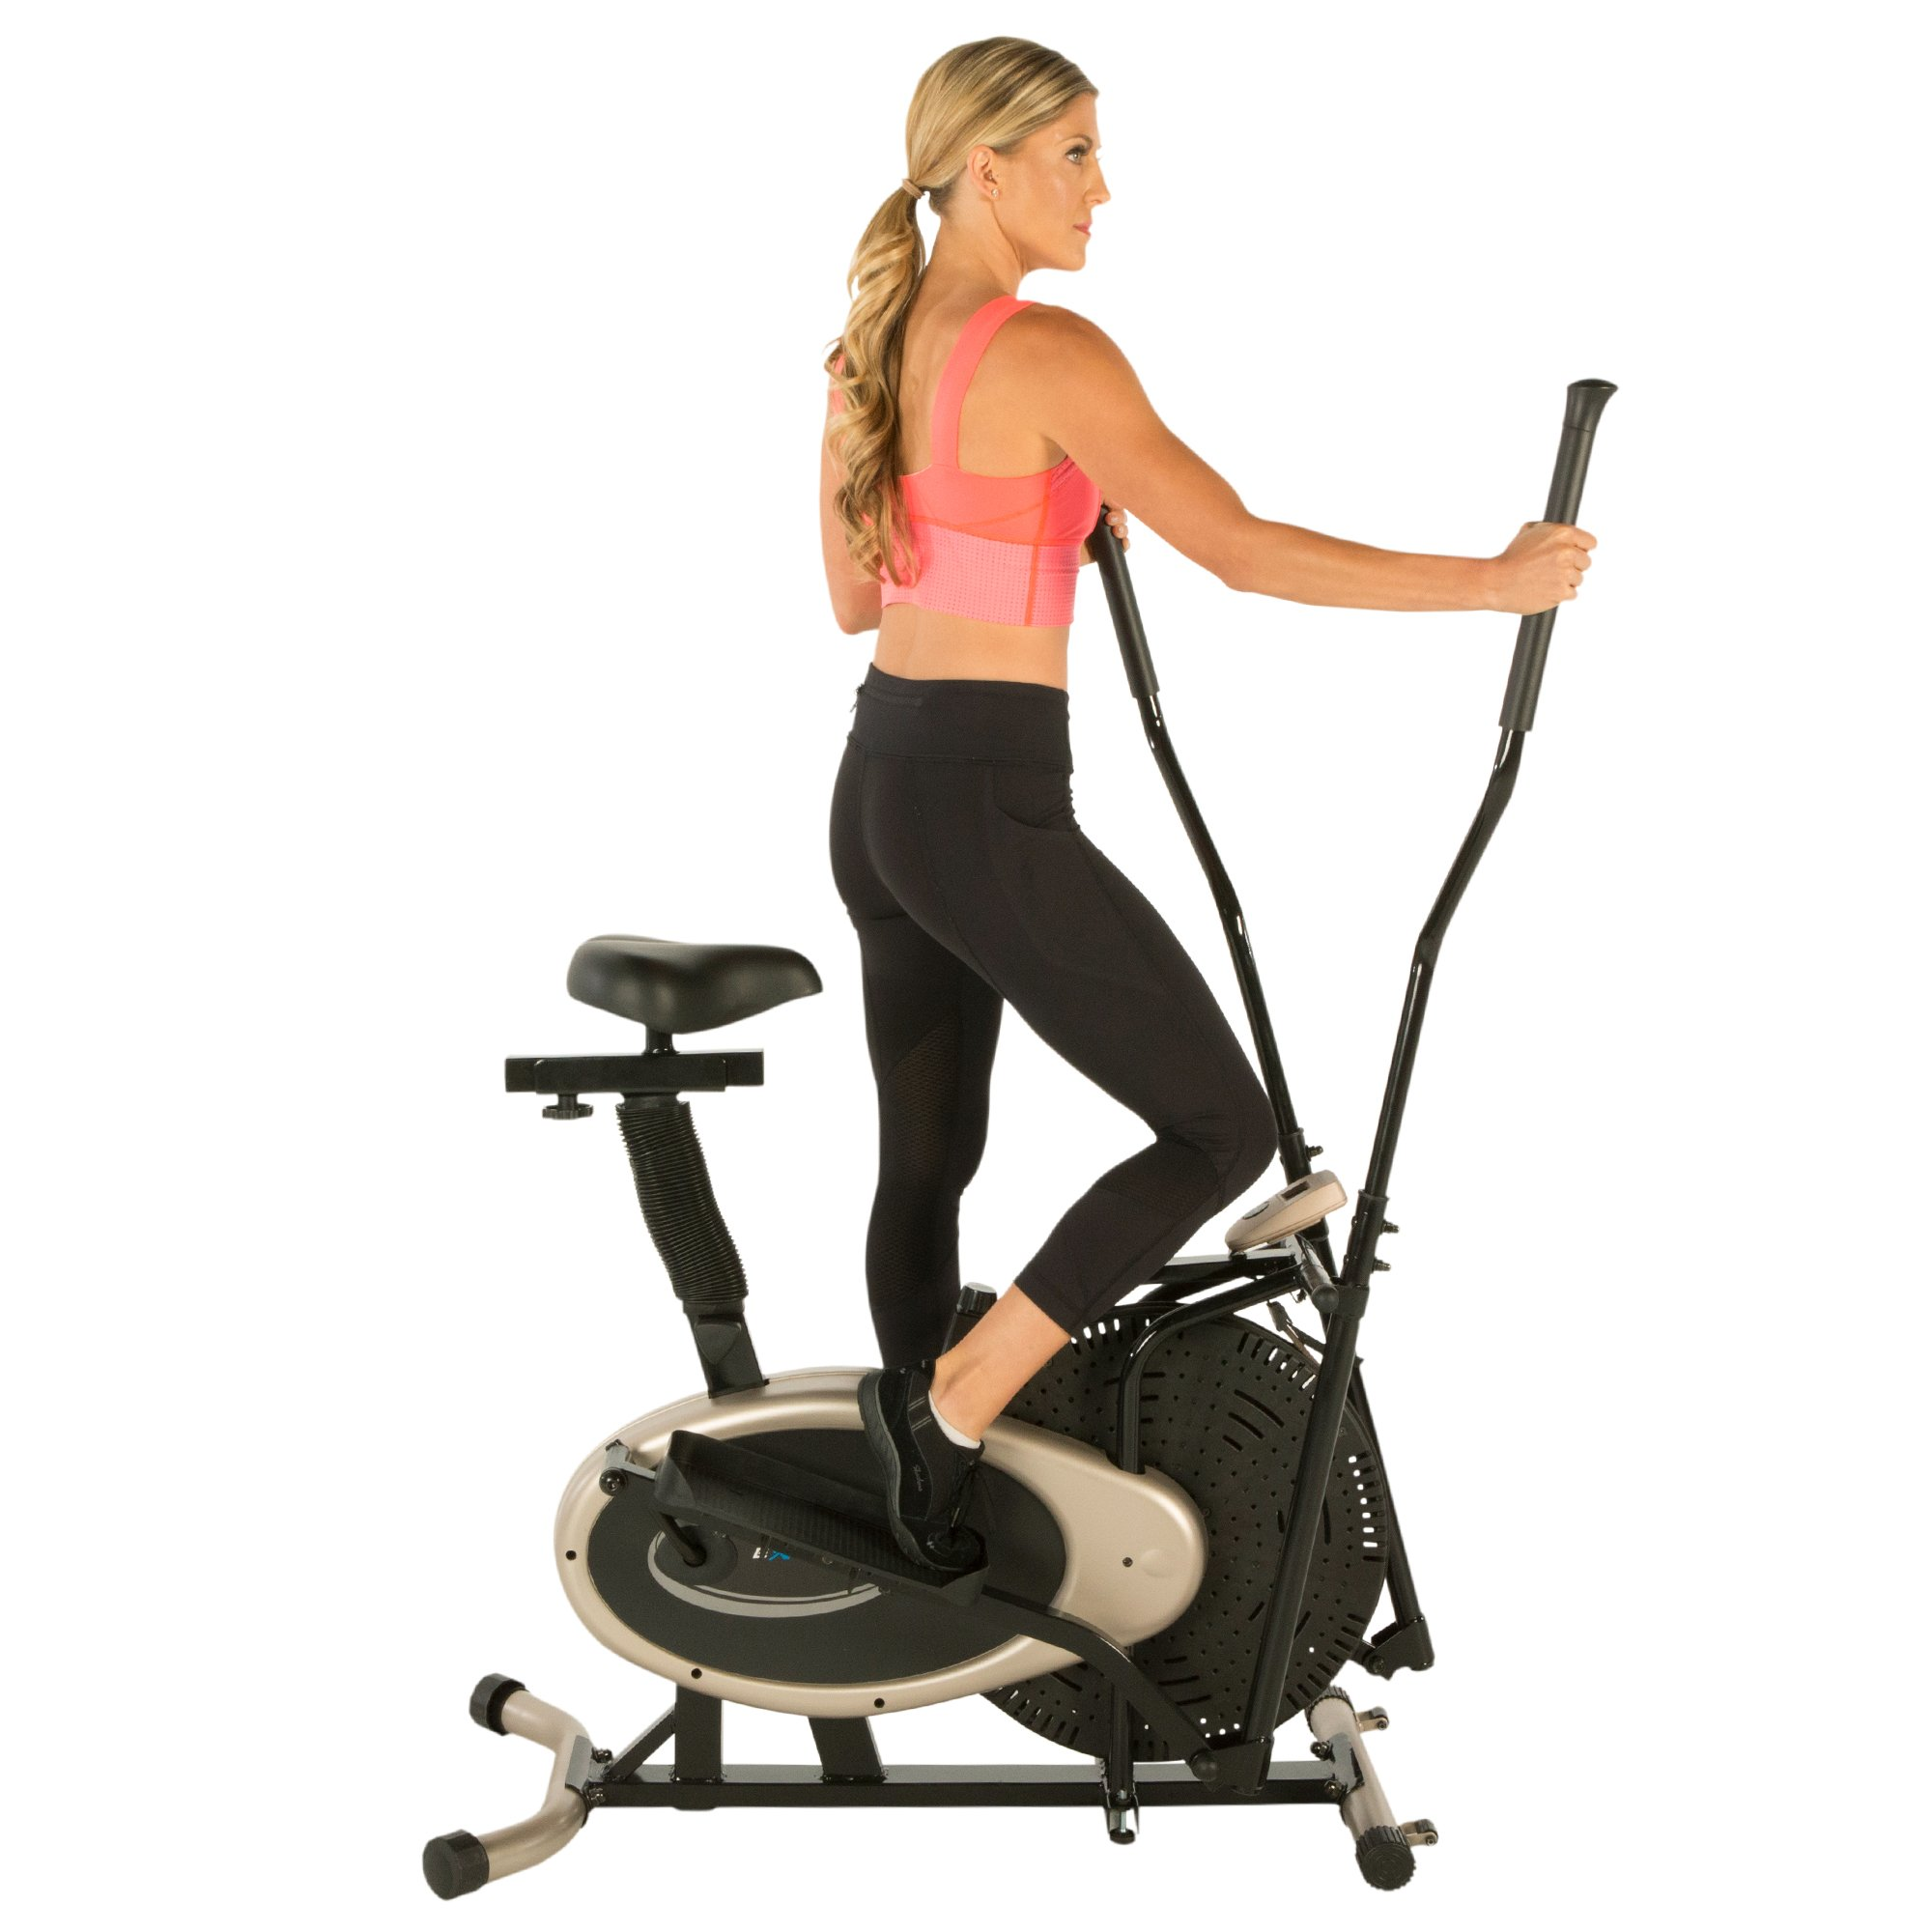 Exerpeutic Gold Elliptical and Exercise Bike Dual Trainer by Exerpeutic (Image #1)